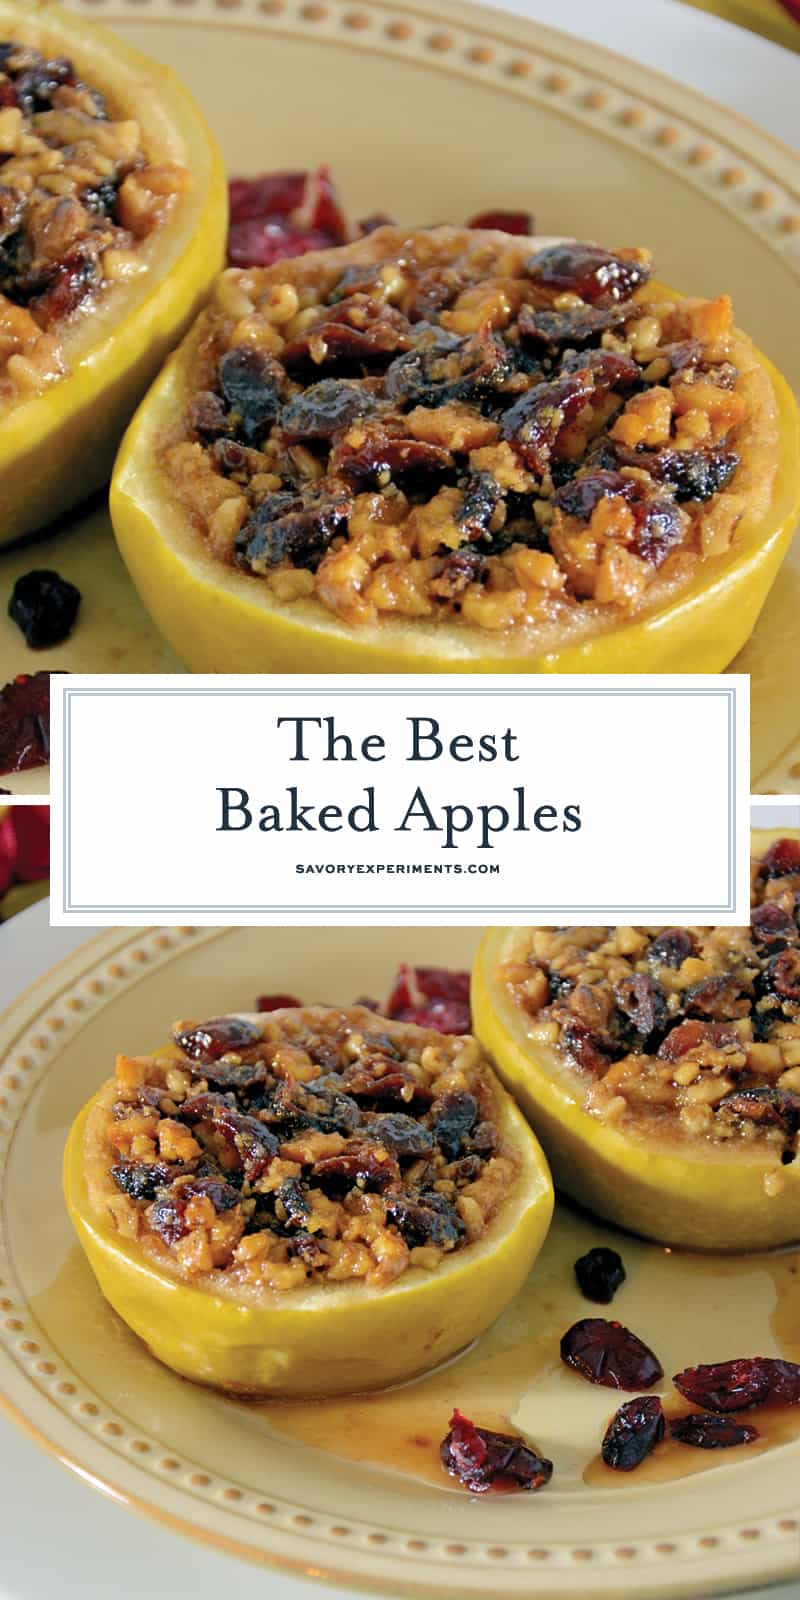 The Best Baked Apples are simple and can be prepared all the way until baking ahead of time. They are perfectly paired with a crisp apple wine and a generous scoop of vanilla, butter or caramel ice cream. #bakedapples www.savoryexperiments.com